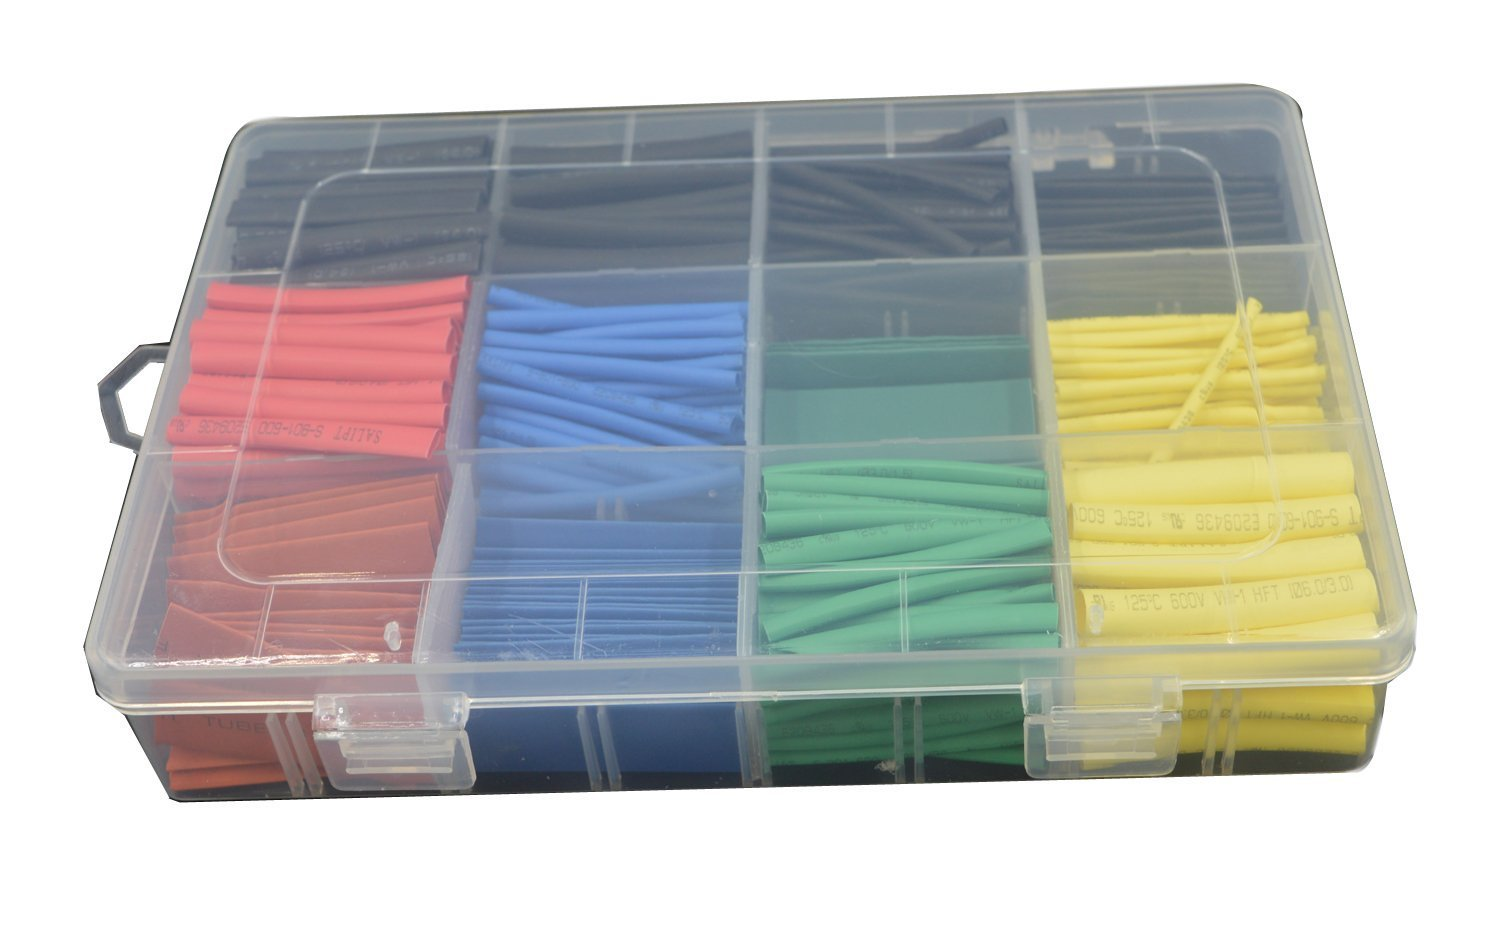 Colorful Heat Shrink Tube Tubing Sleeving Wire Wrap in 8 Sizes Zacro 328 Pcs 2:1 Heat Shrink Wrap Assortment